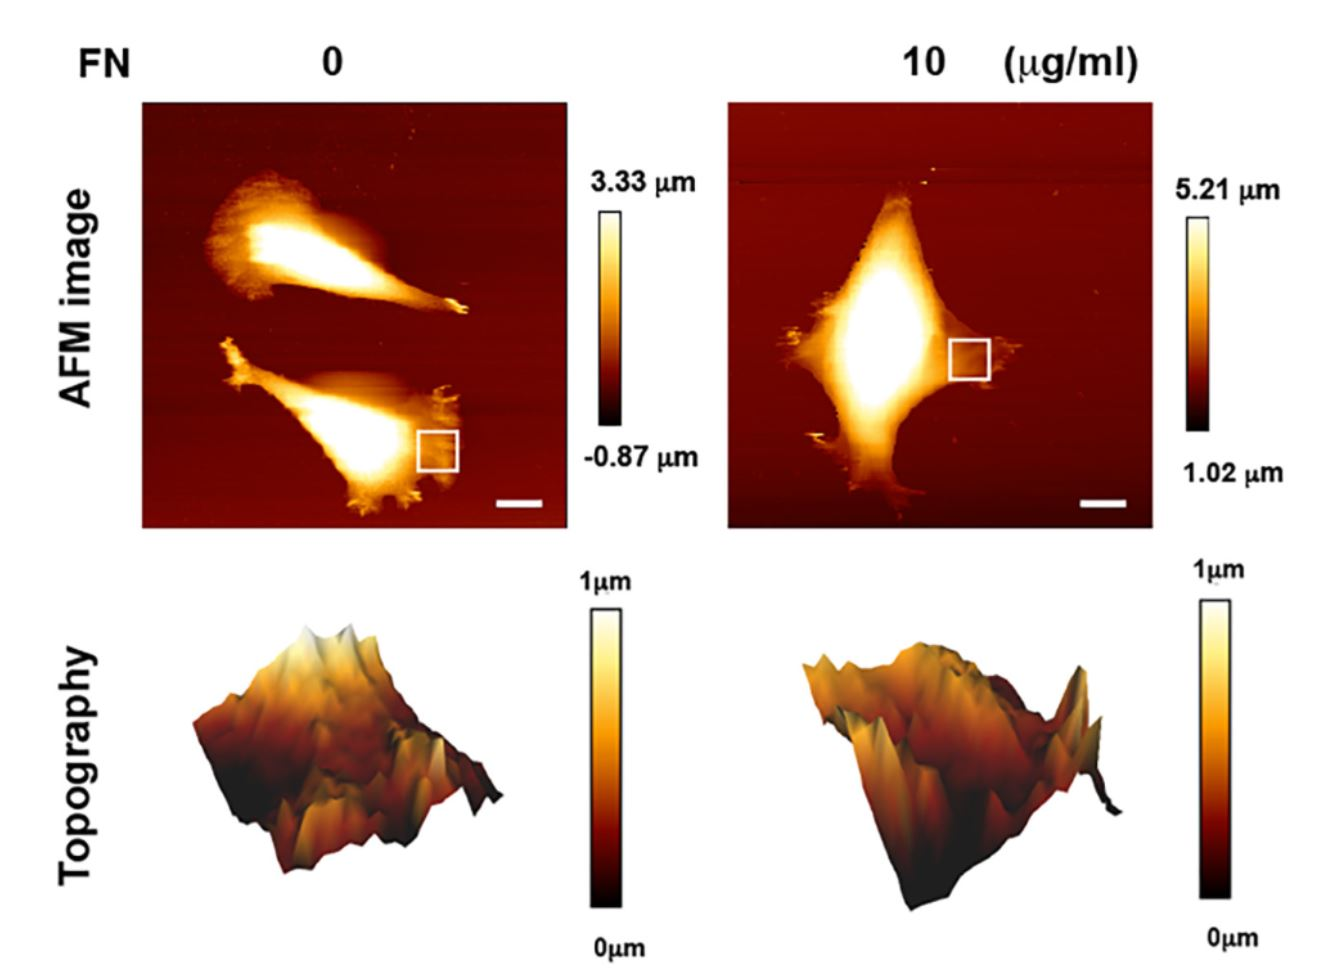 "Supplementary Figure S1 from Chao-Hung Chang et al. ""Substrate properties modulate cell membrane roughness by way of actin filaments"": Images of membrane topography determined by atomic force microscopy (AFM). MEFs were seeded on the polymer coverslip-bottom μ-dishes coated with 0 or 10 μg/ml FN for 6 hours for the measurement of membrane roughness by AFM. The regions marked by the white squares in the bright-field images are displayed in the membrane topography. Scale bar, 10 μm. NANOSENSORS uniqprobe qp-SCONT AFM probes(long cantilever length 125 um, spring constant 0.01 N/m) were used."